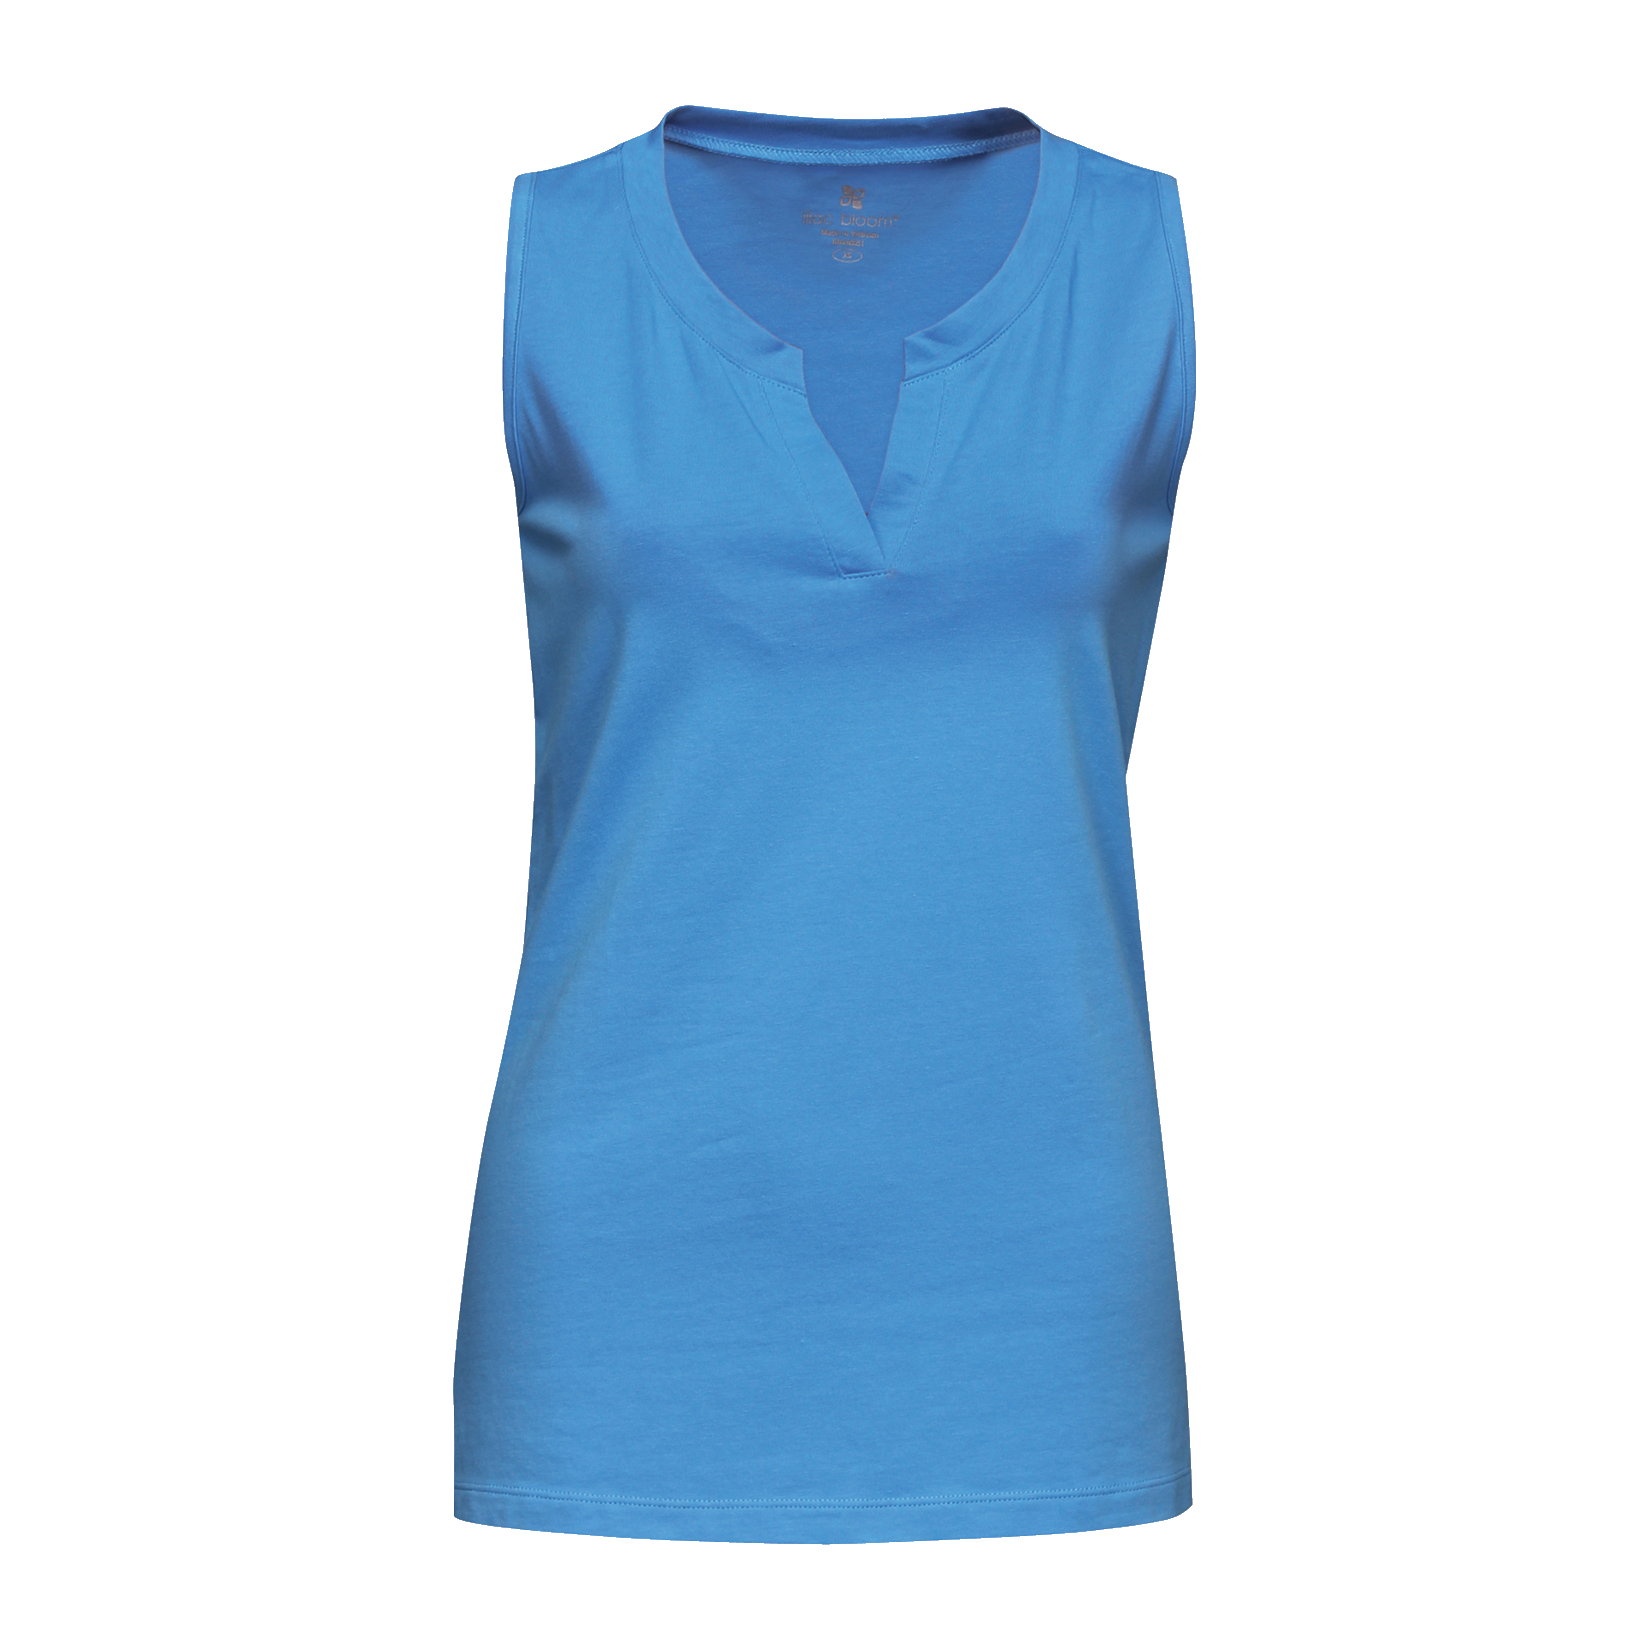 D1705 Ladies Jersey Sleeveless Knit Top